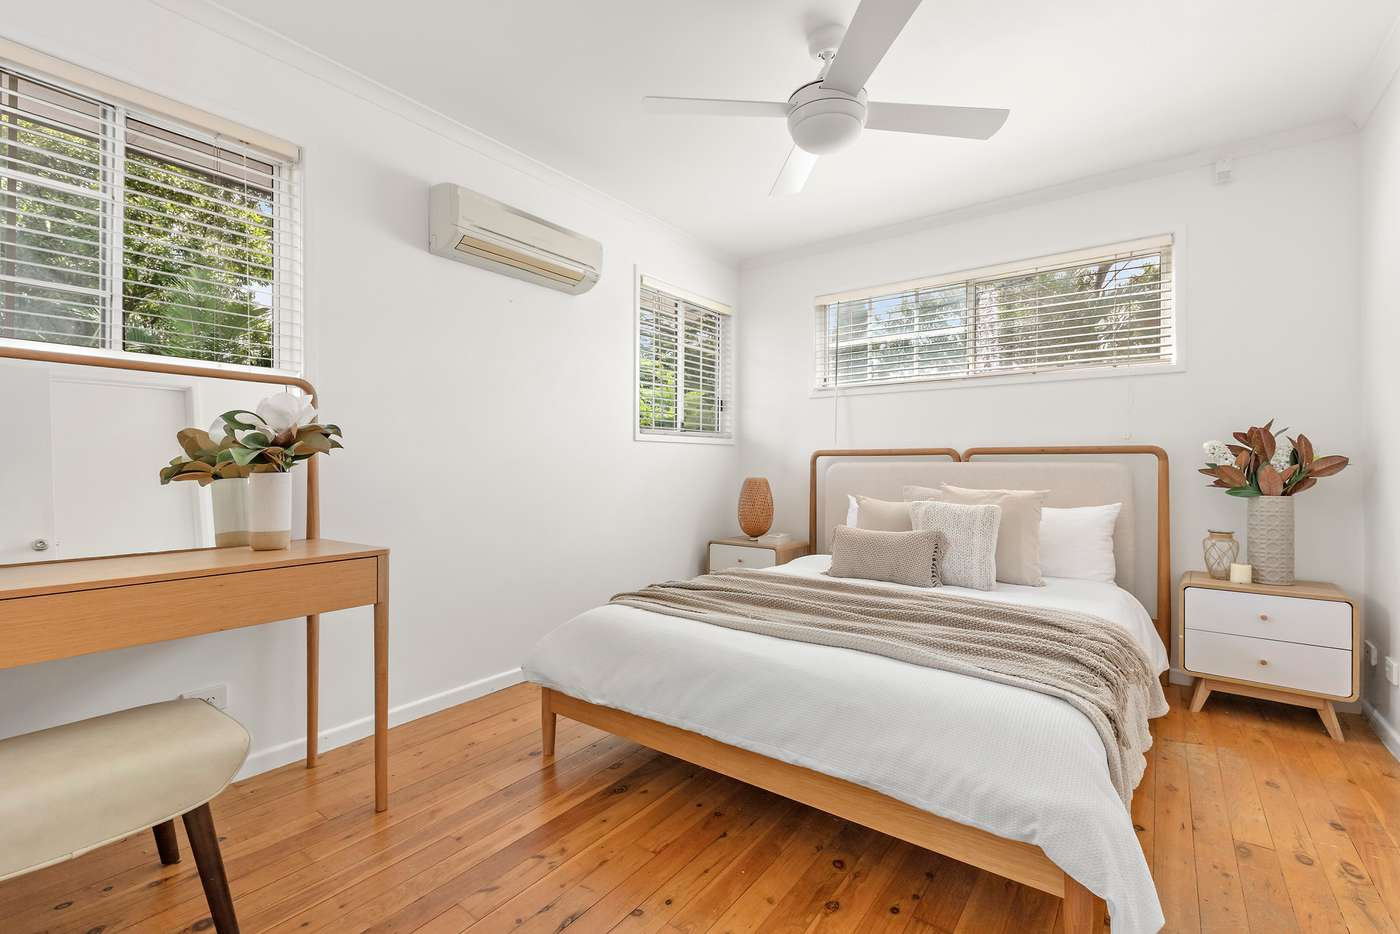 Sixth view of Homely house listing, 62 Coolong Street, Mount Gravatt East QLD 4122